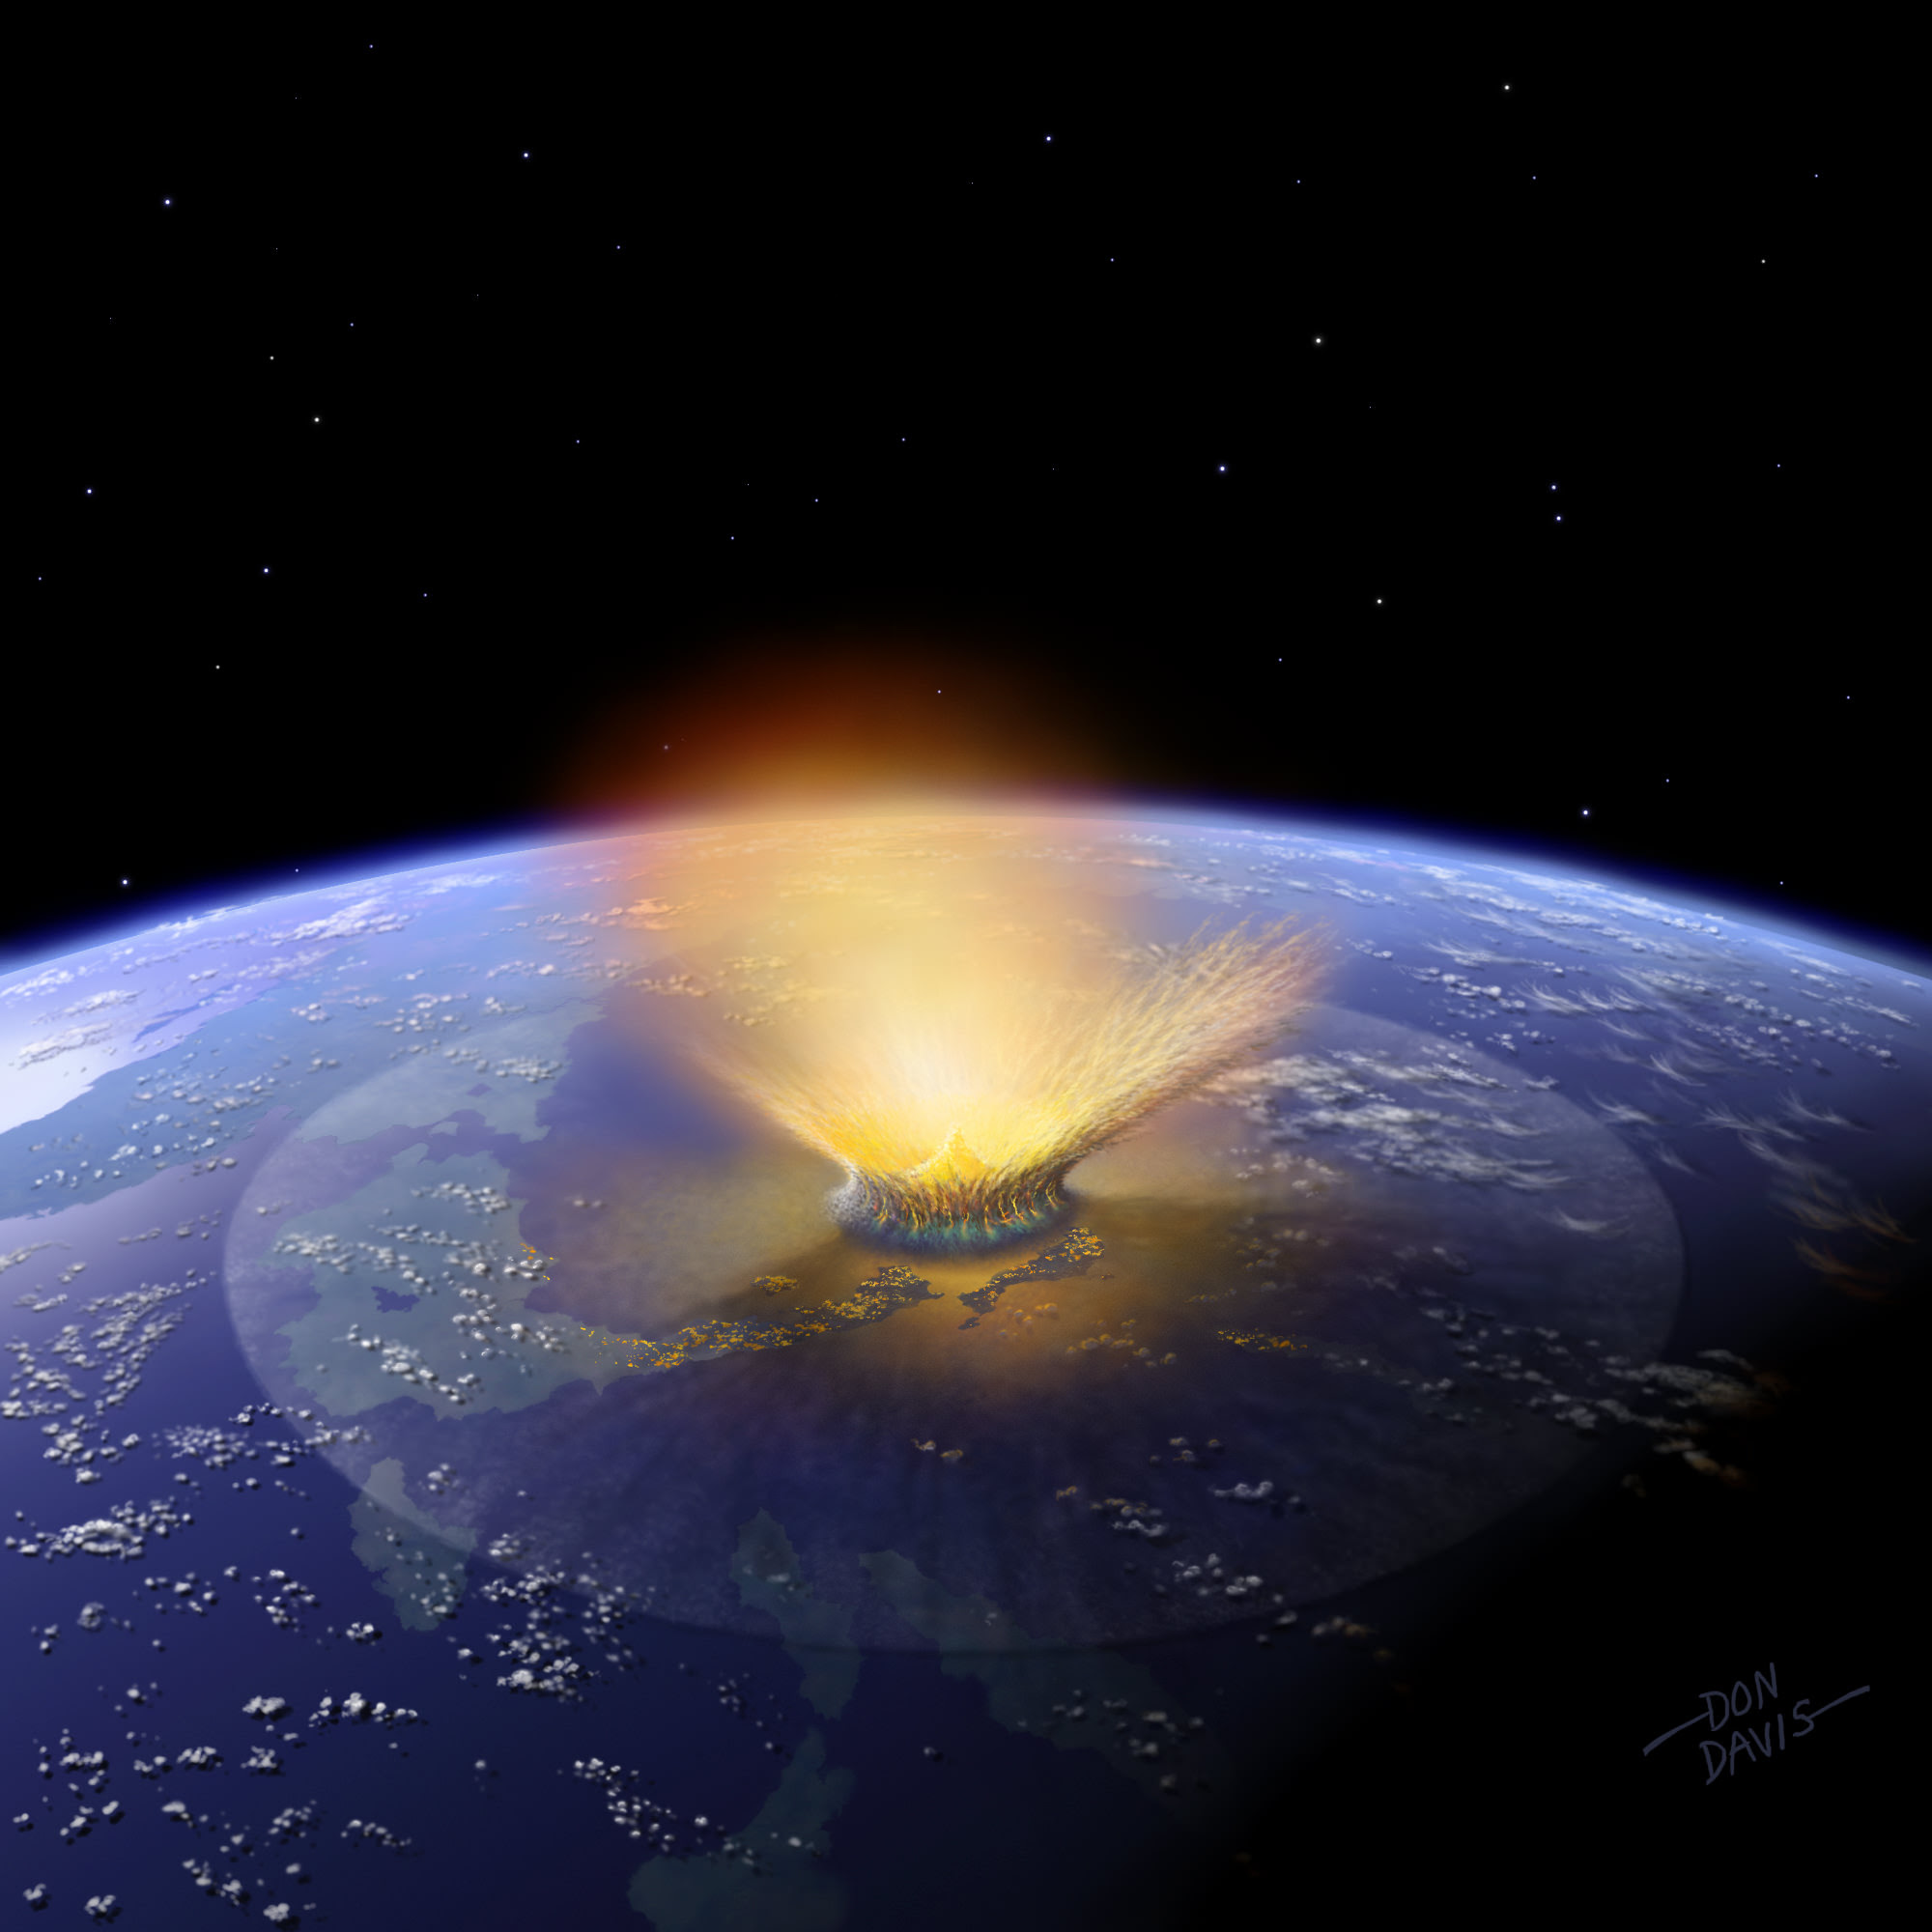 This is an artist's depiction of a 10-kilometer (6-mile) diameter asteroid striking the Earth. New evidence in Australia suggests an asteroid 2 to 3 times larger than this struck Earth early in its life. Credit: Don Davis/Southwest Research Institute.